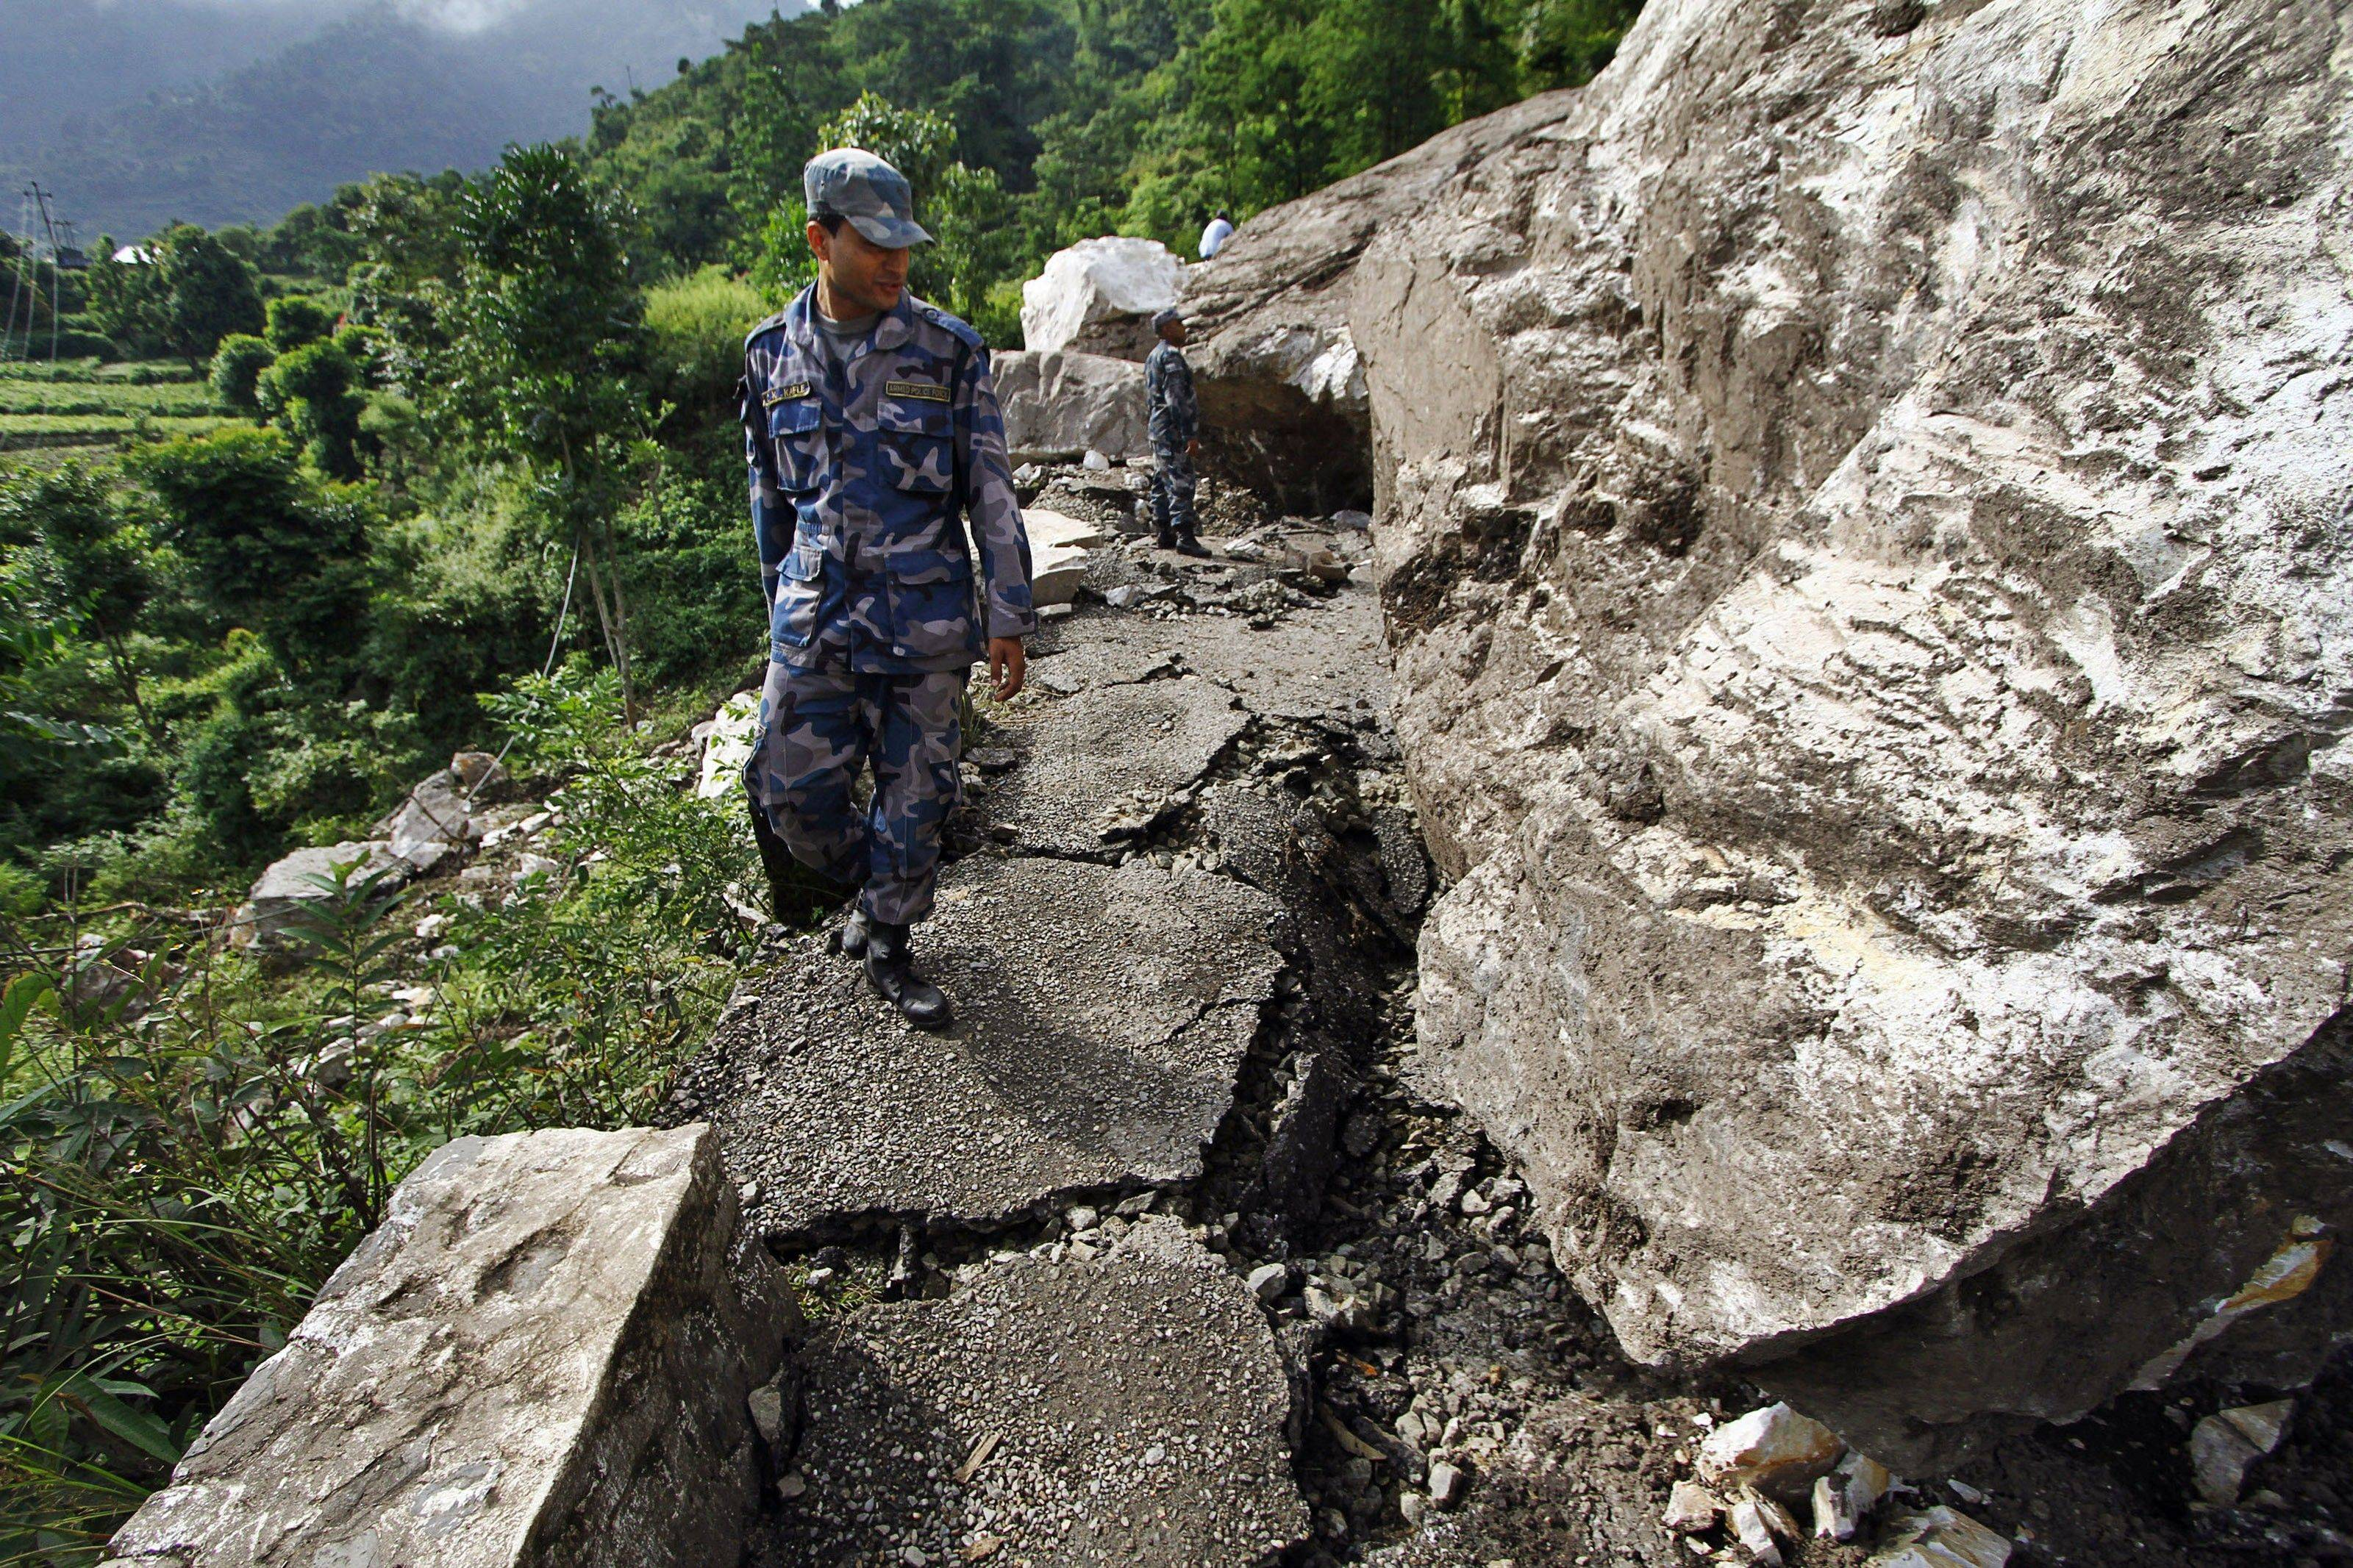 Nepalese police personnel pass by the damaged portion of the Dharan-Dhankuta road about 133 miles from Katmandu, Nepal, on Wednesday. A plane carrying tourists to view Mount Everest crashed Sunday while attempting to land in dense fog in Nepal.